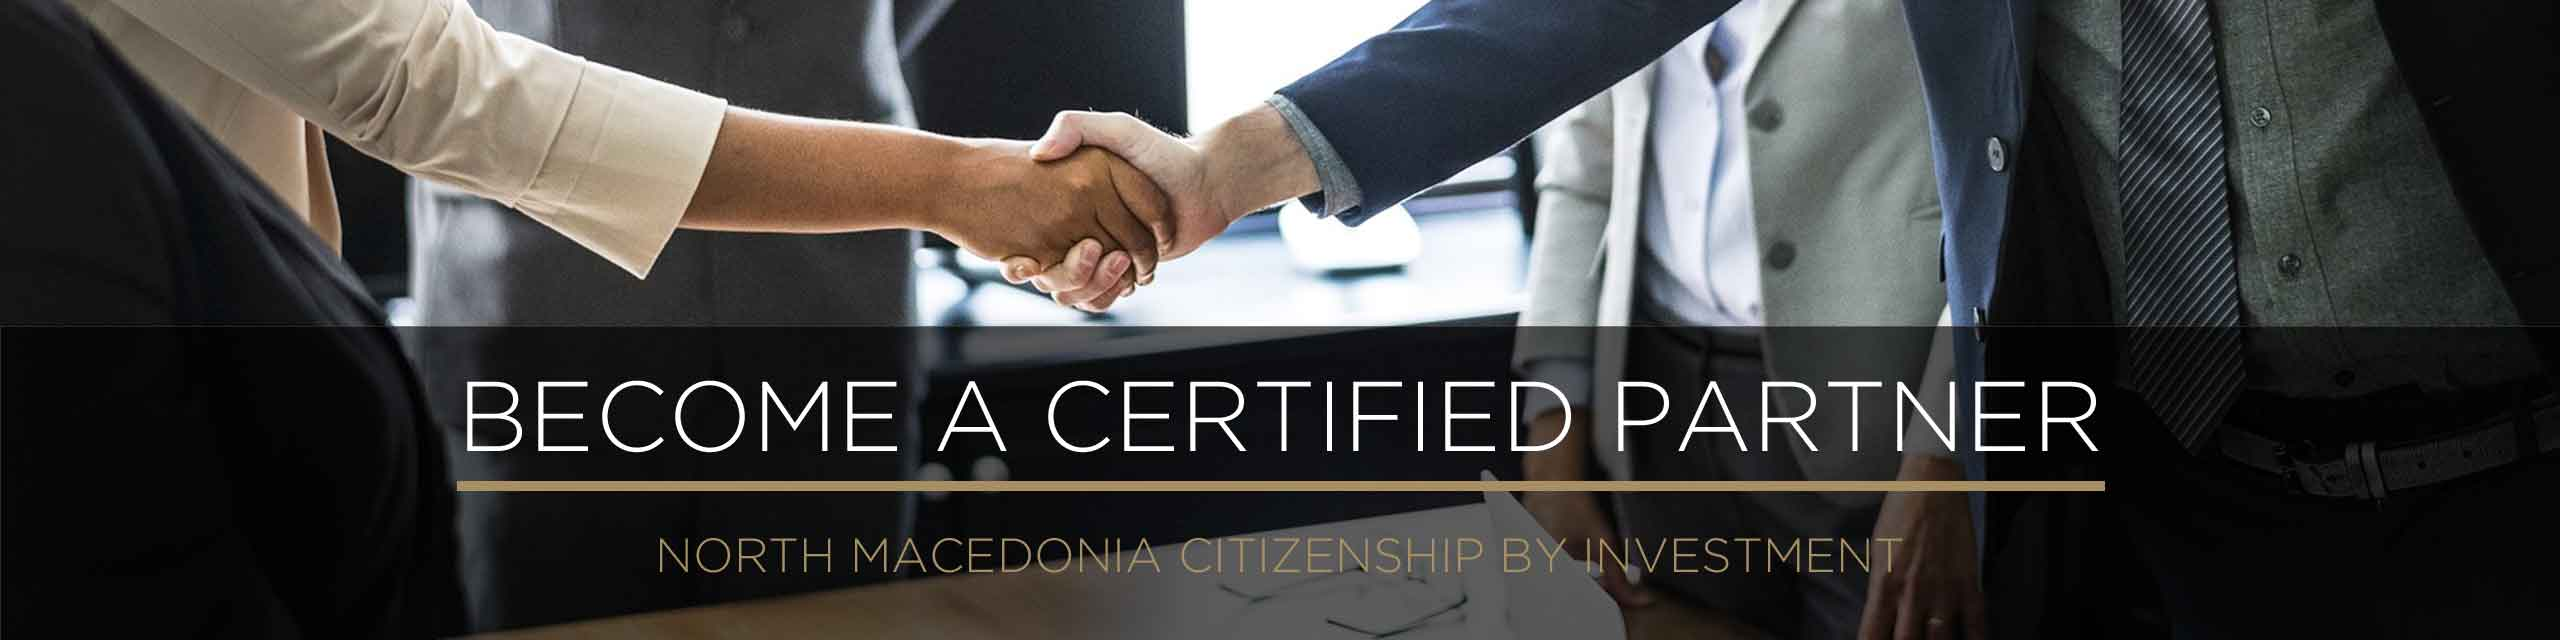 Become a Certified Partner of GCI - Global Citizenship Investment